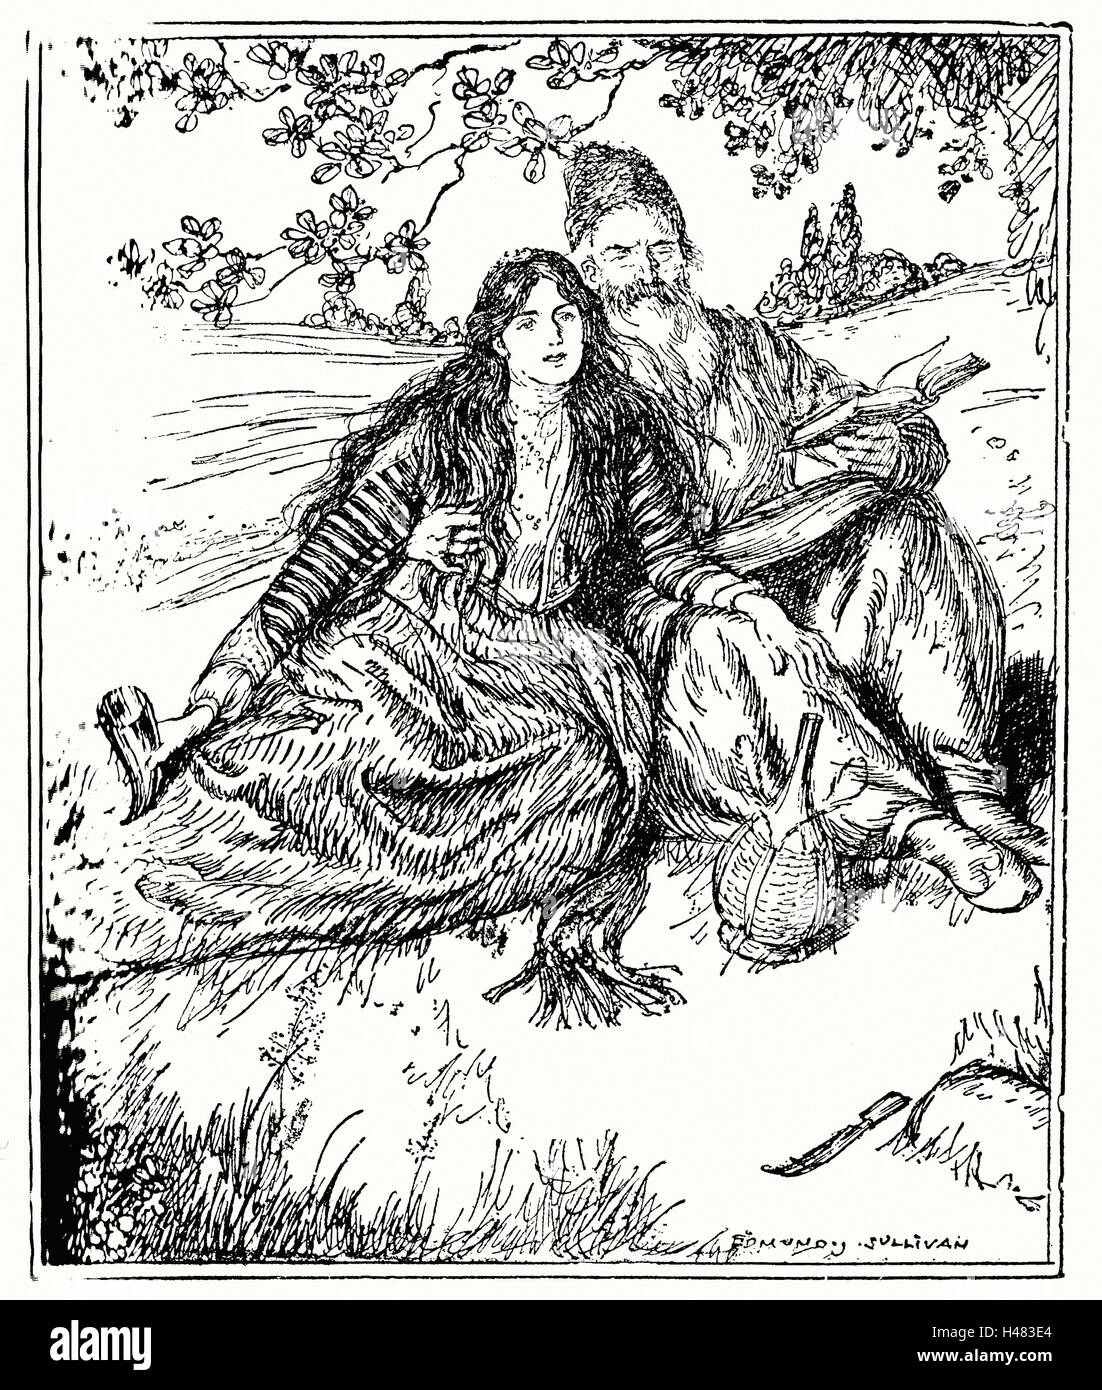 Edmund J Sullivan Illustrations to The Rubaiyat of Omar Khayyam First Version Quatrain - Stock Image